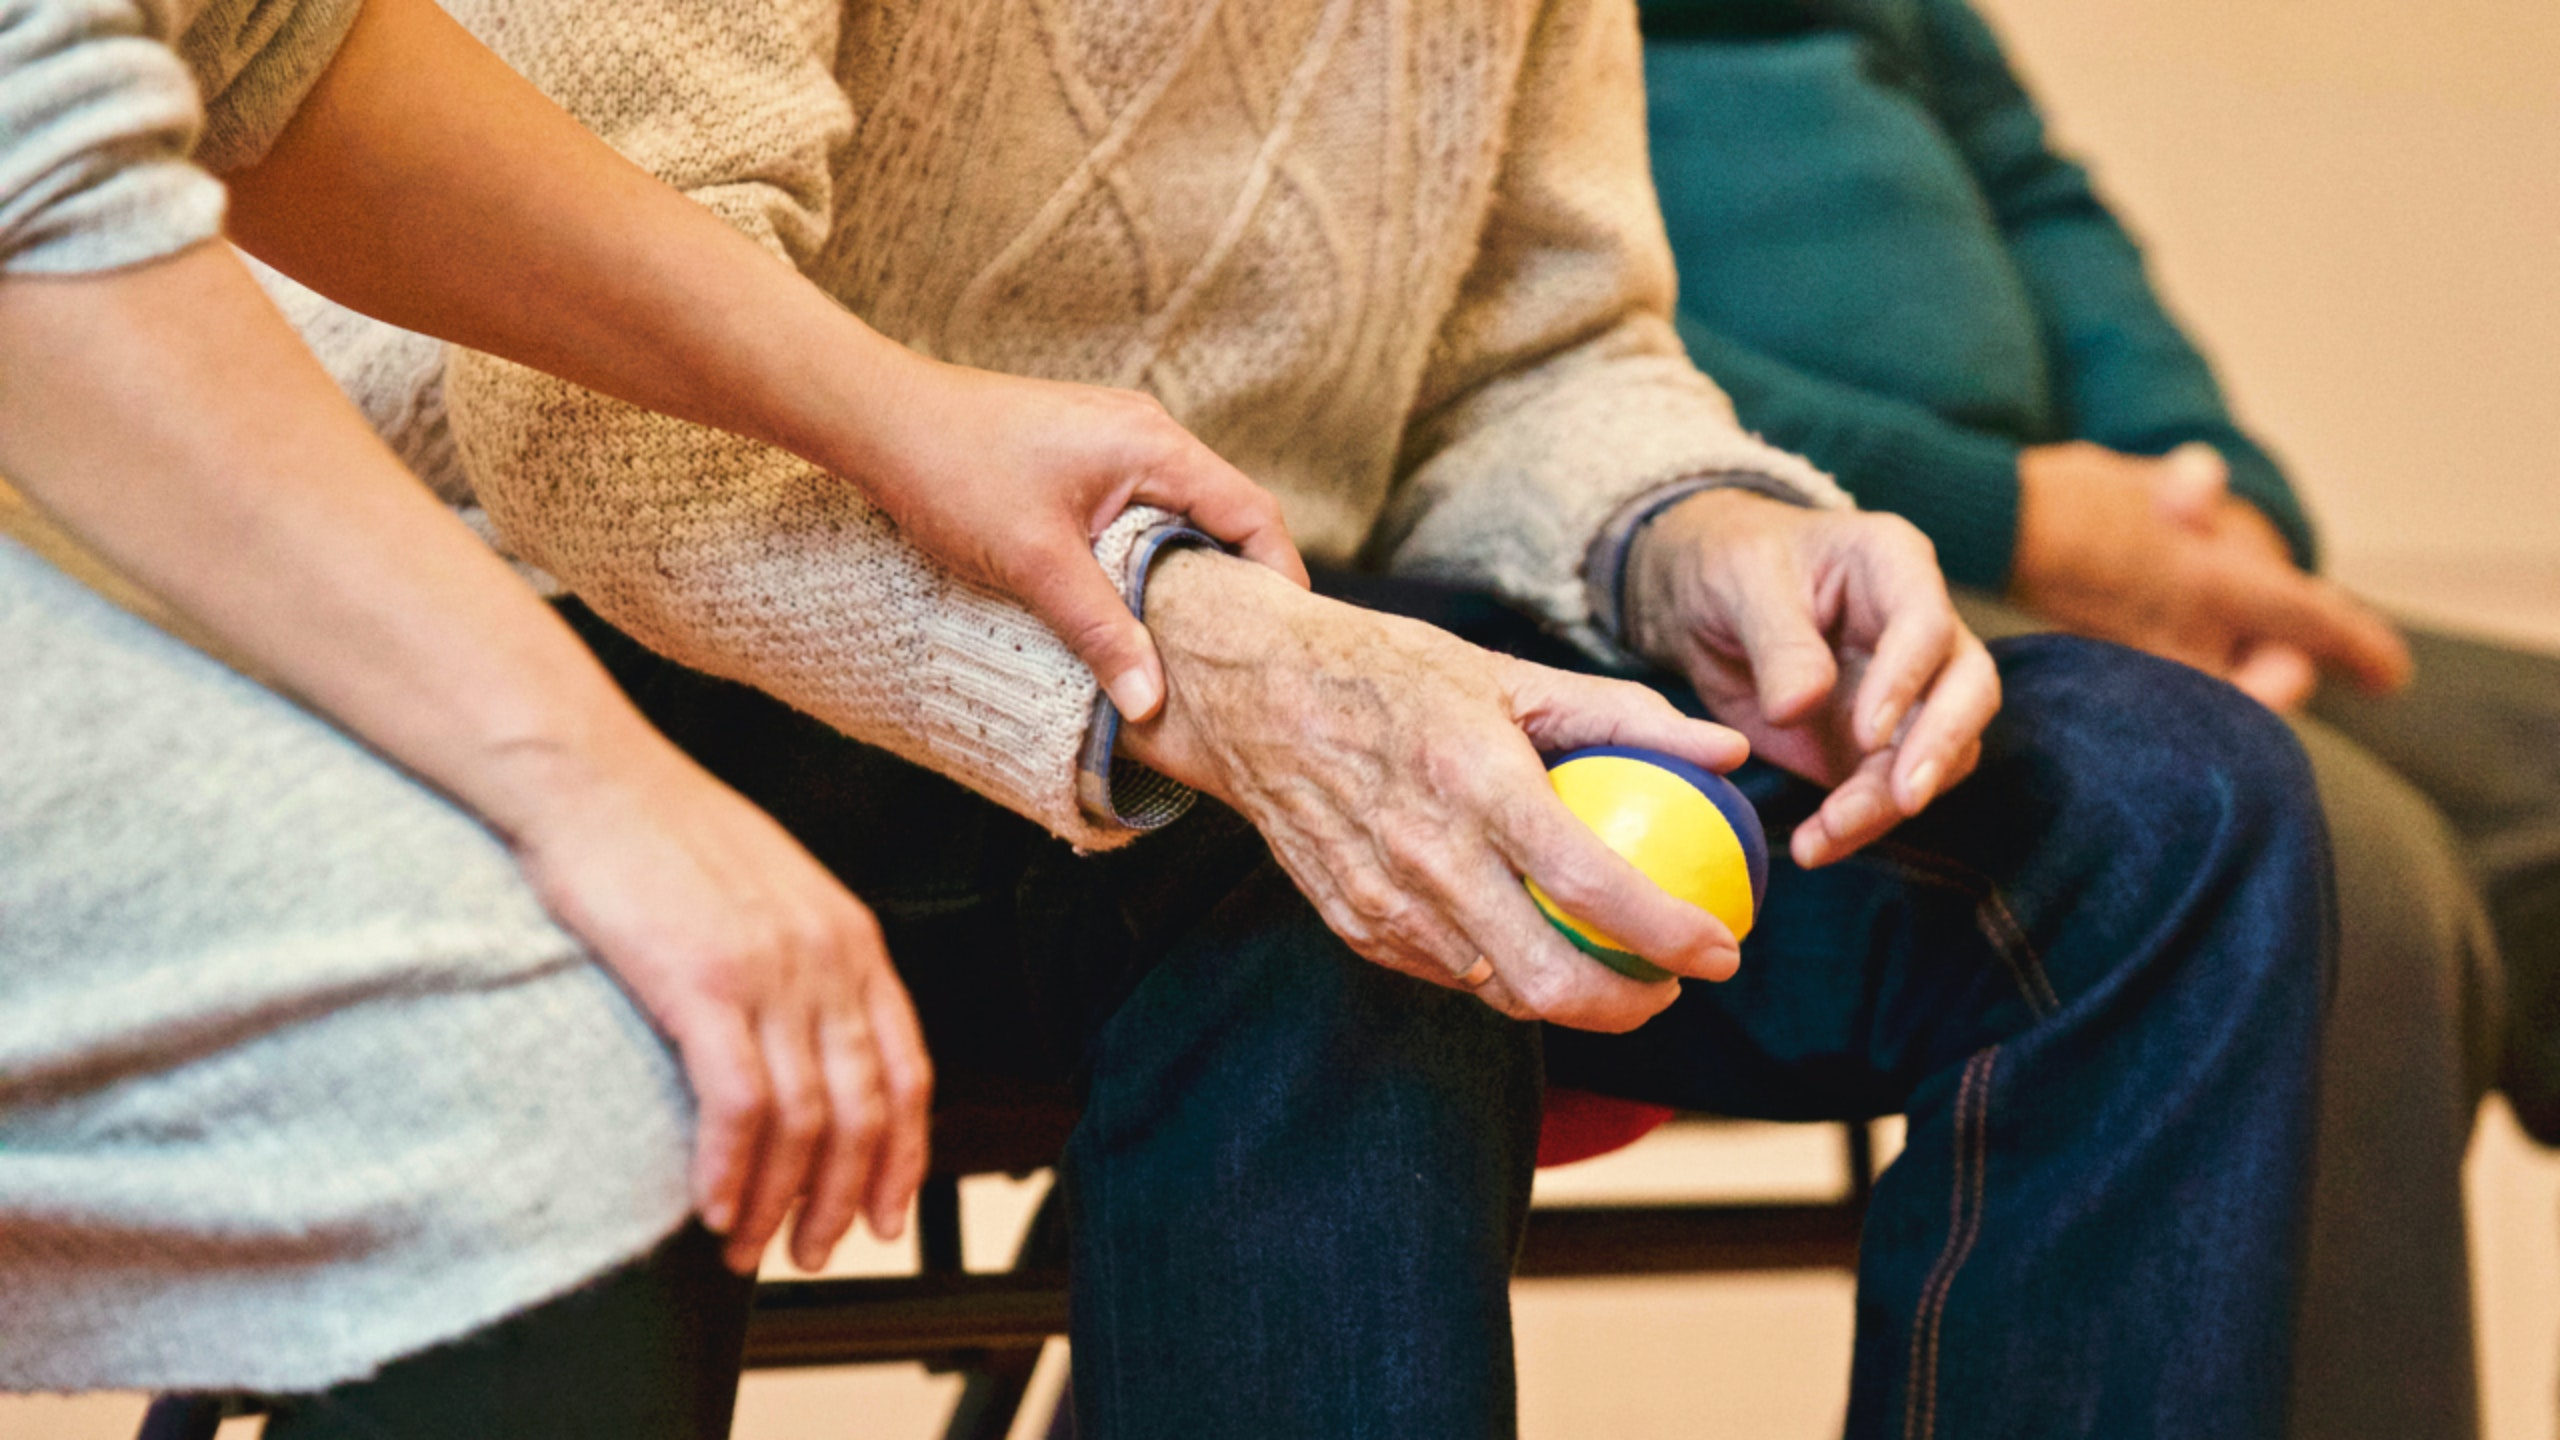 image of a woman reaching out to an elderly person holding a stress ball.